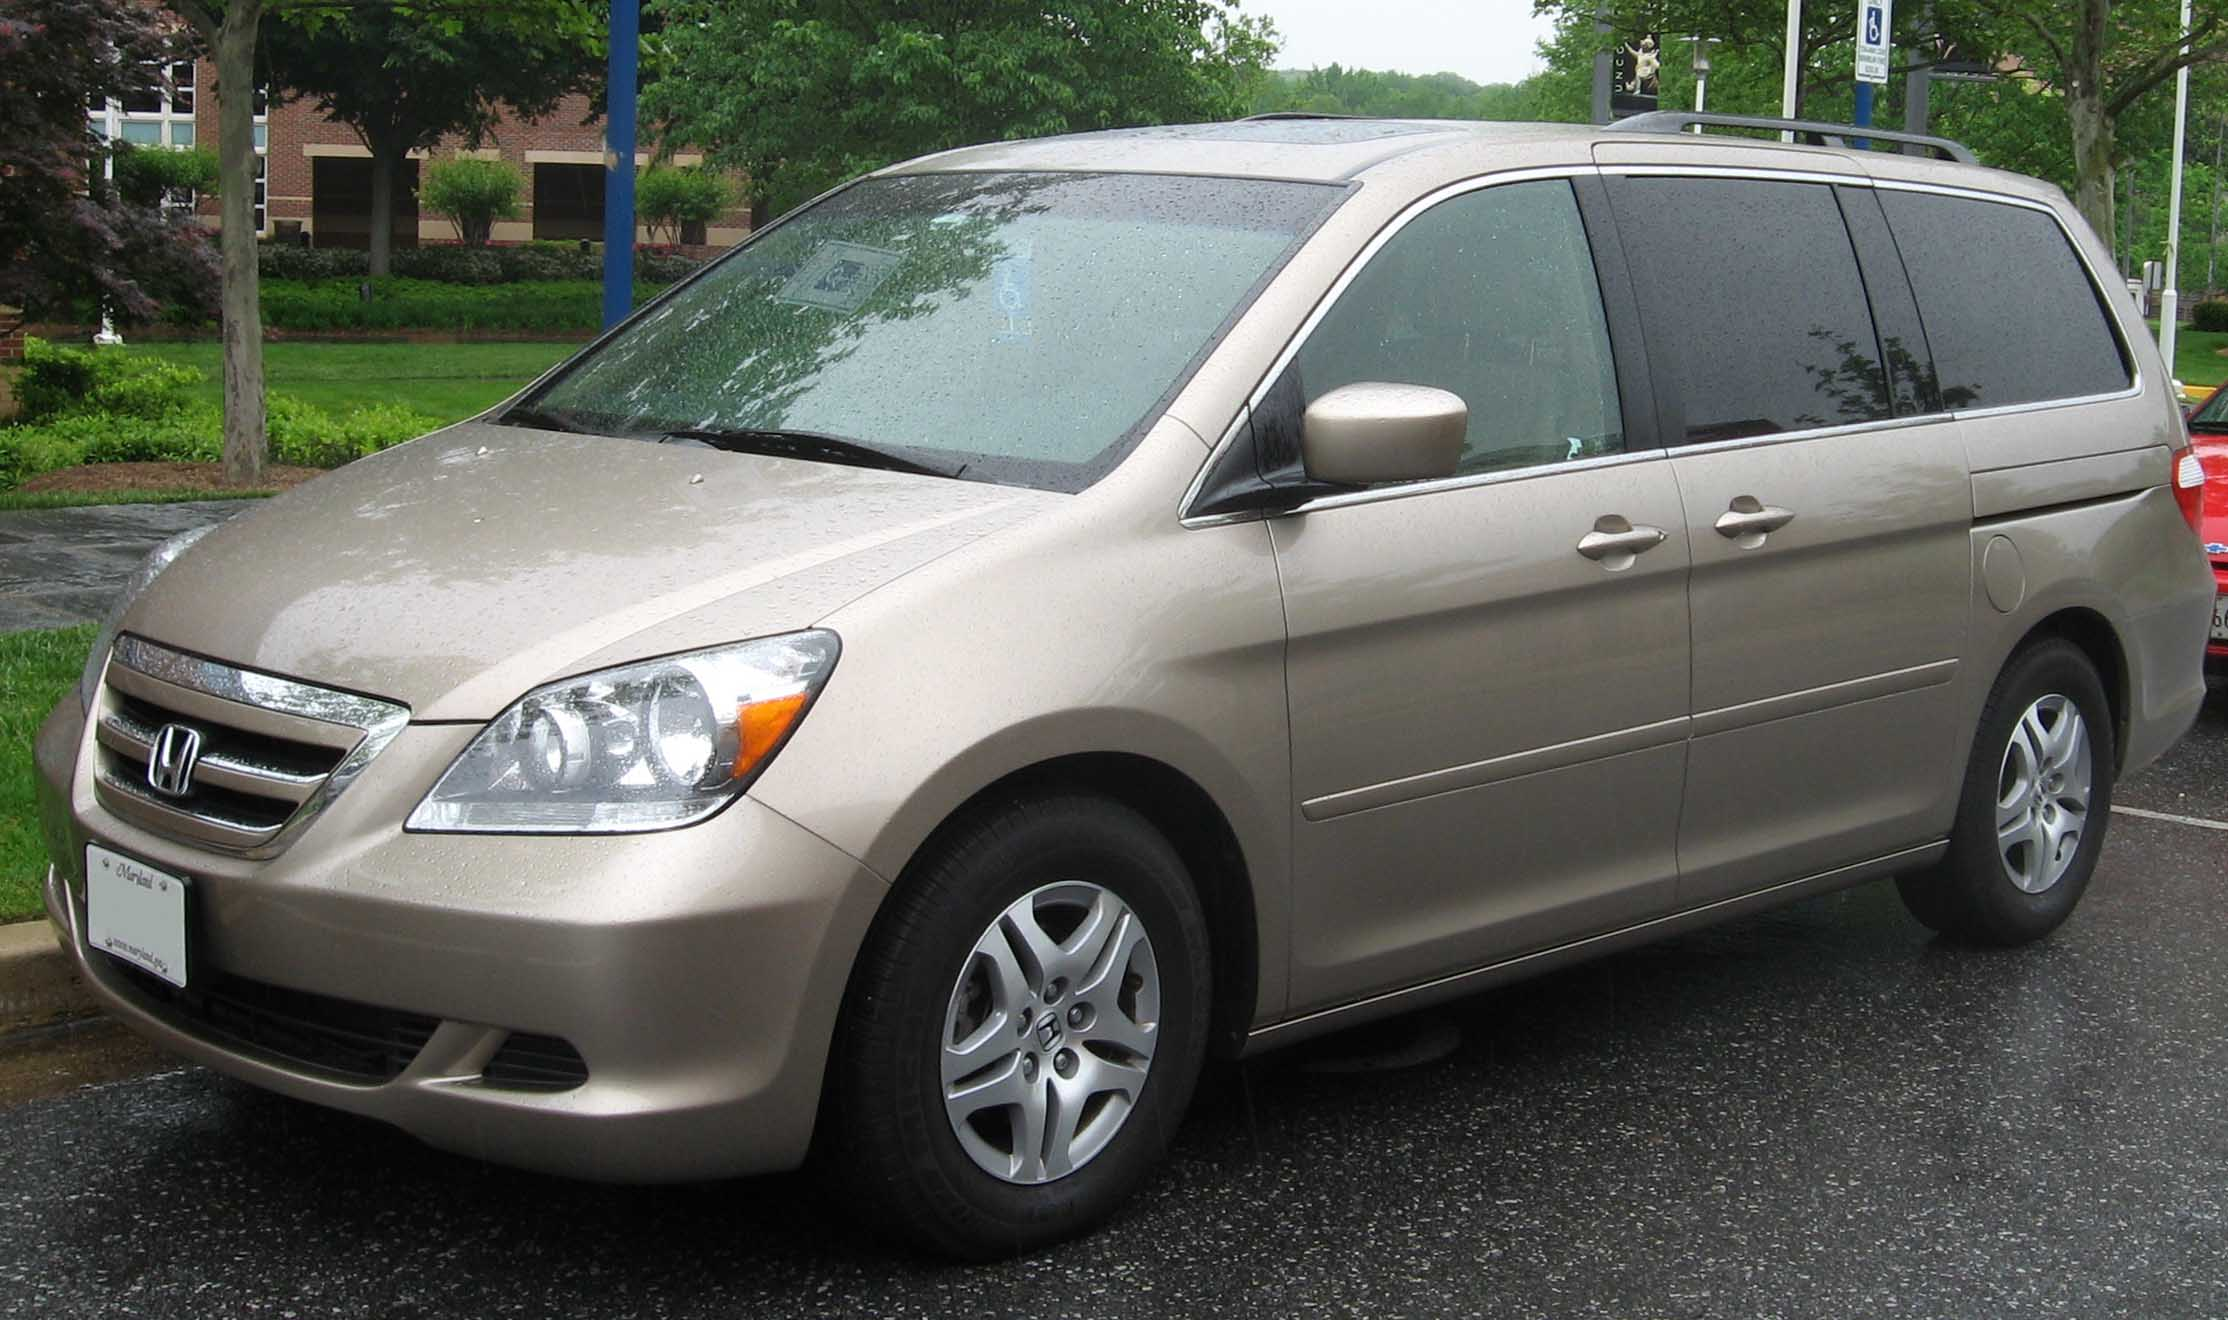 toyota ipsum vs honda odyssey which is best. Black Bedroom Furniture Sets. Home Design Ideas